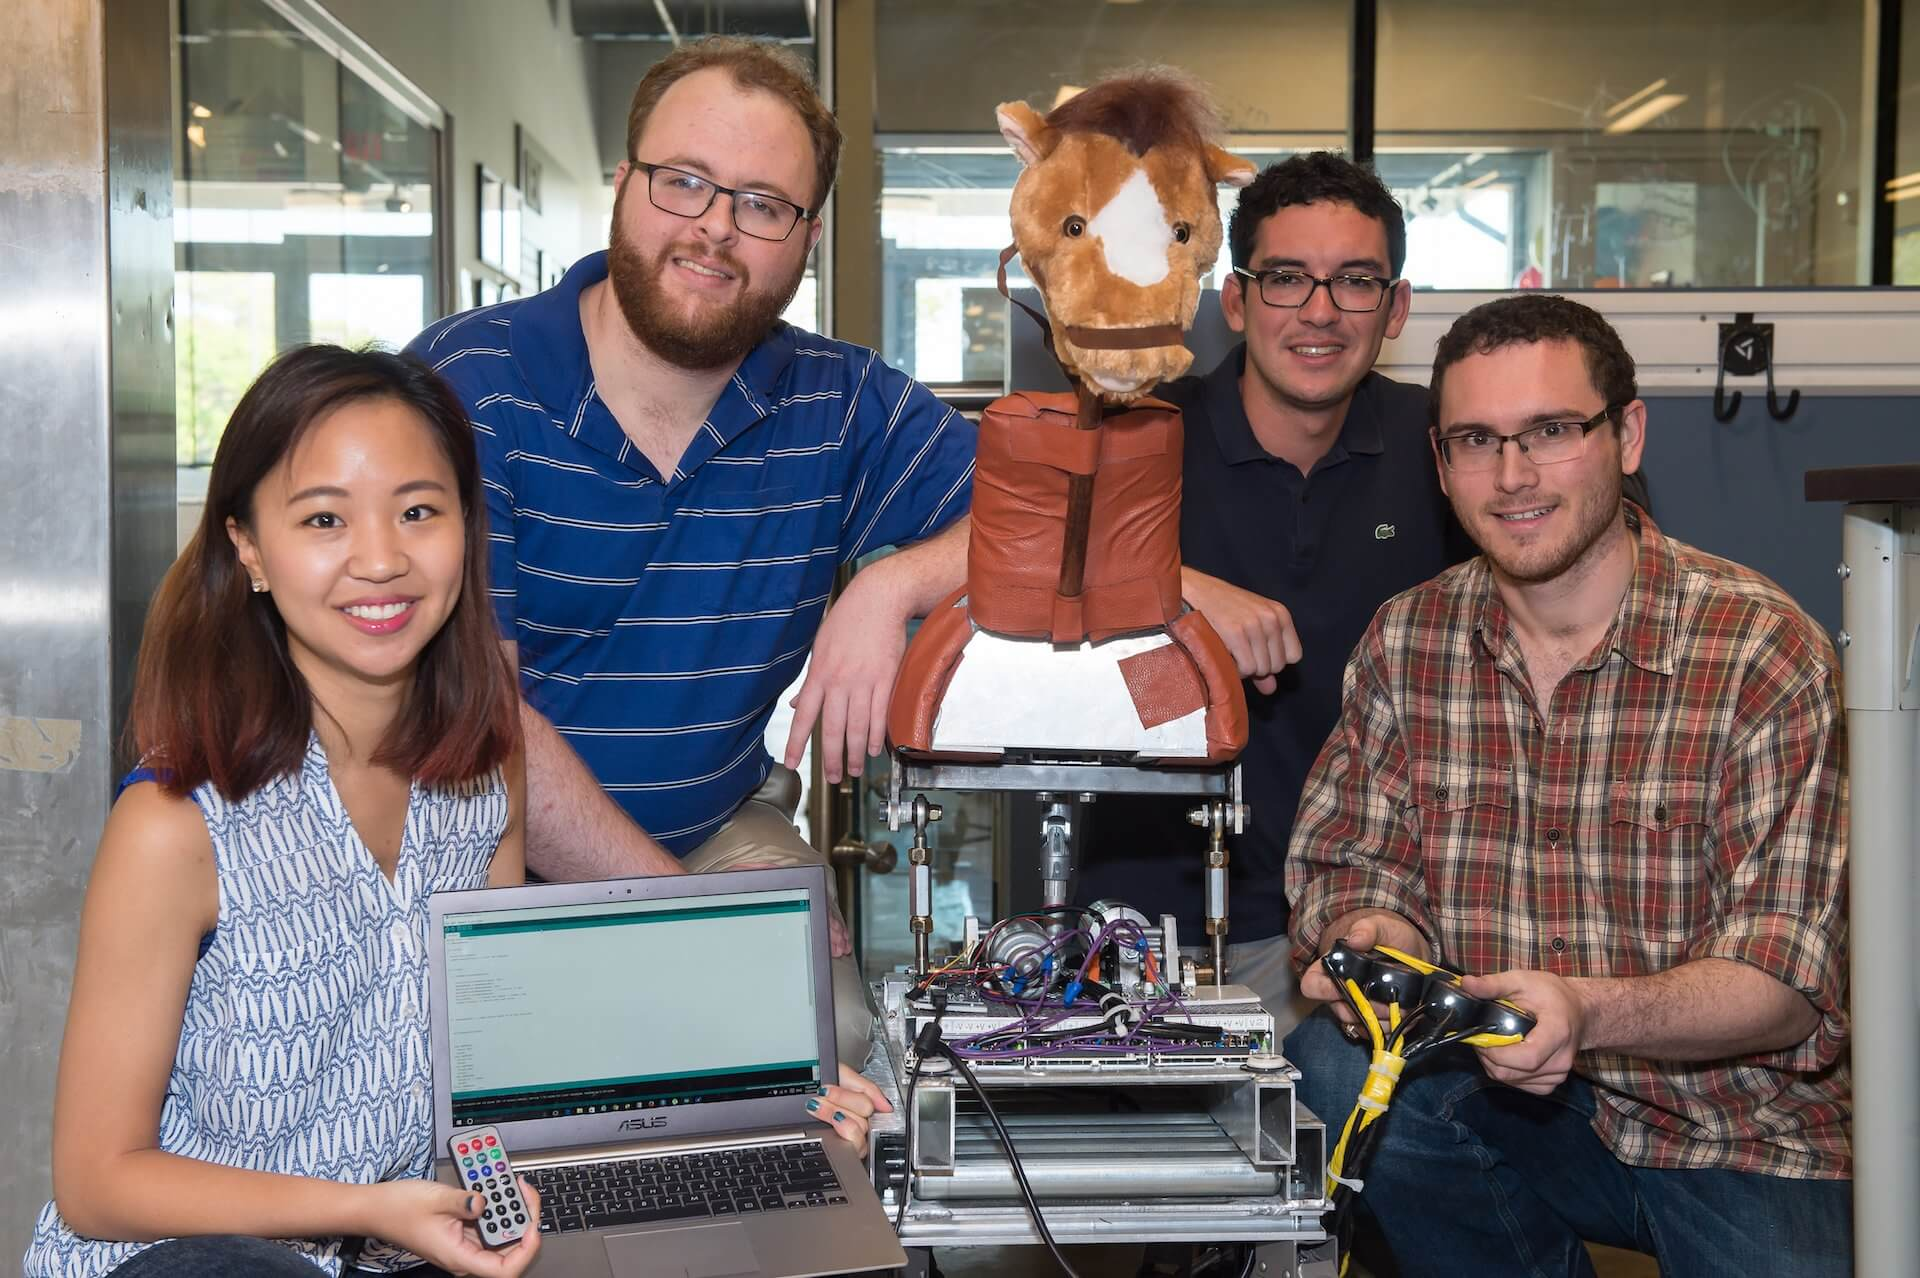 The Hippo Riders team of Rice University engineering students has created a horse simulator for use by hippotherapy patients. From left: Amy Ryu, Erik Hansen, Jaime Gomez and Brett Berger. (Credit: Jeff Fitlow/Rice University)